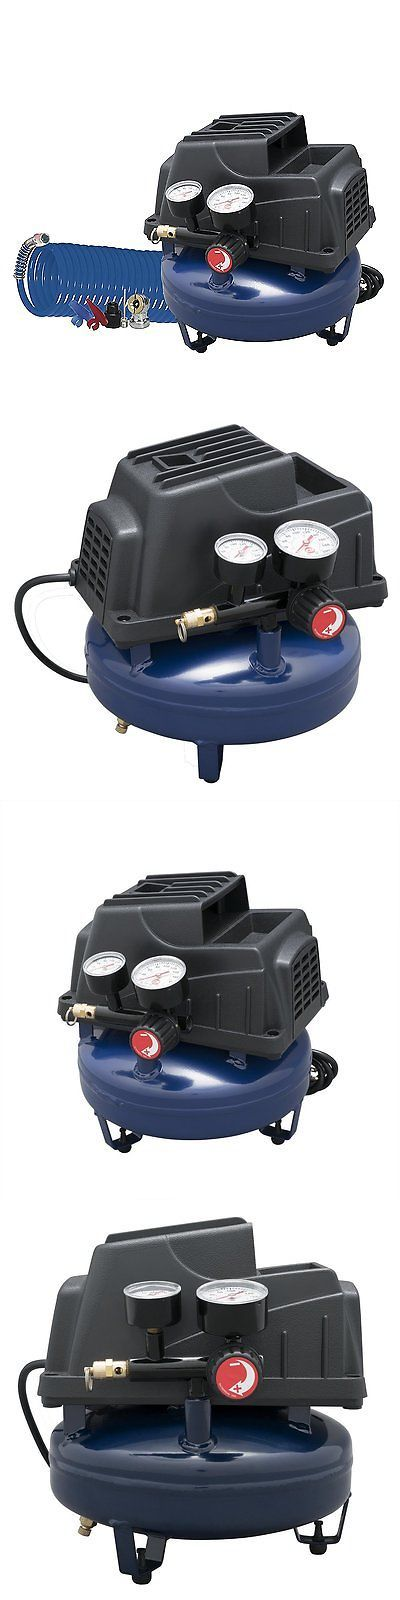 Air Compressors 30506: Campbell Hausfeld Air Compressor, 1-Gallon Pancake Oilless .36 Cfm .33Hp 120V 3A -> BUY IT NOW ONLY: $65.06 on eBay!